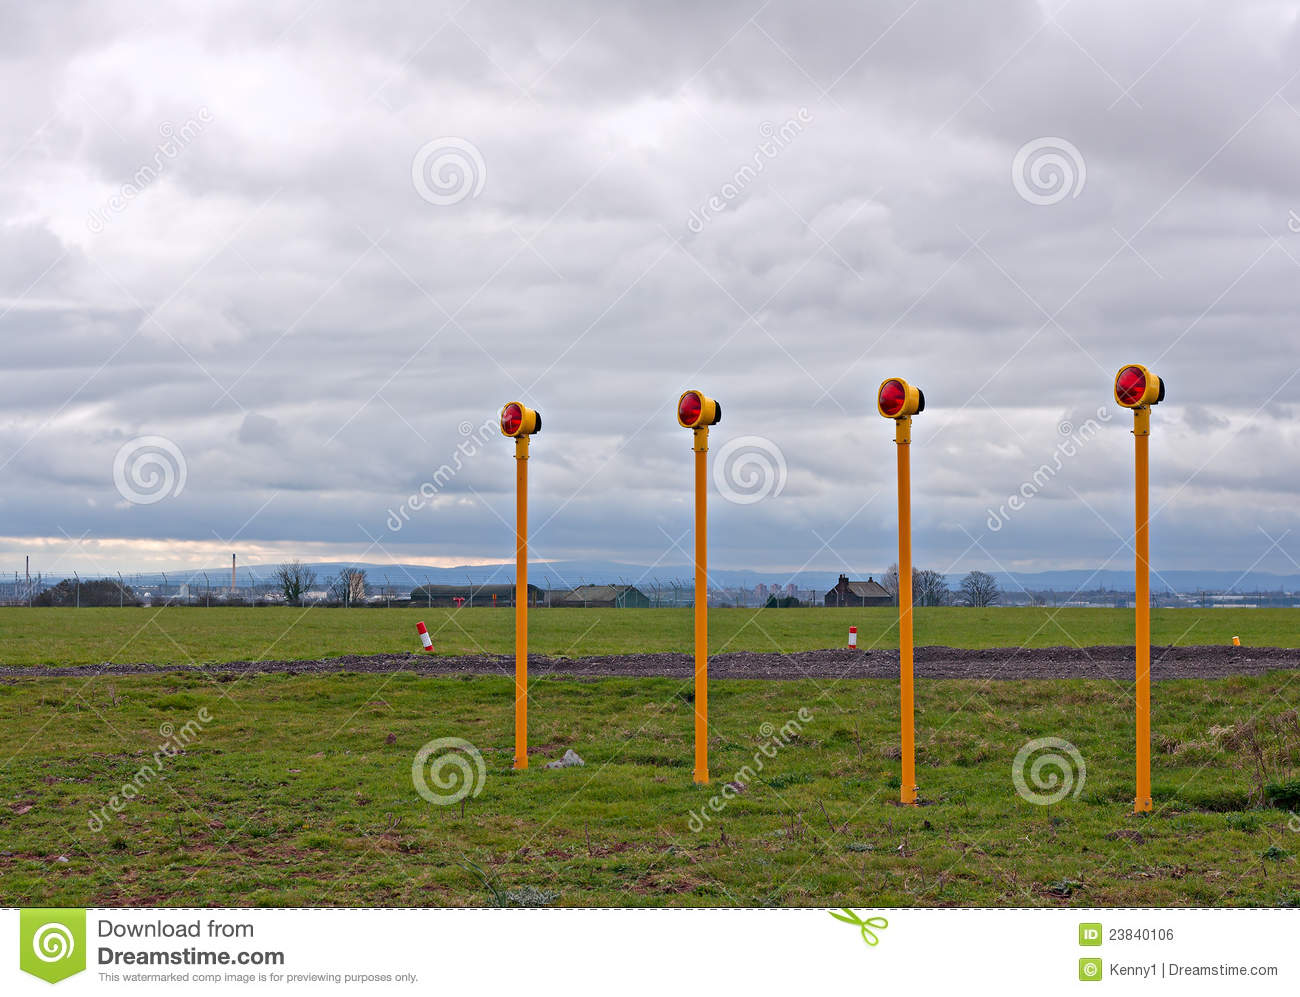 Airport Approach Landing Lights Stock Photo - Image of